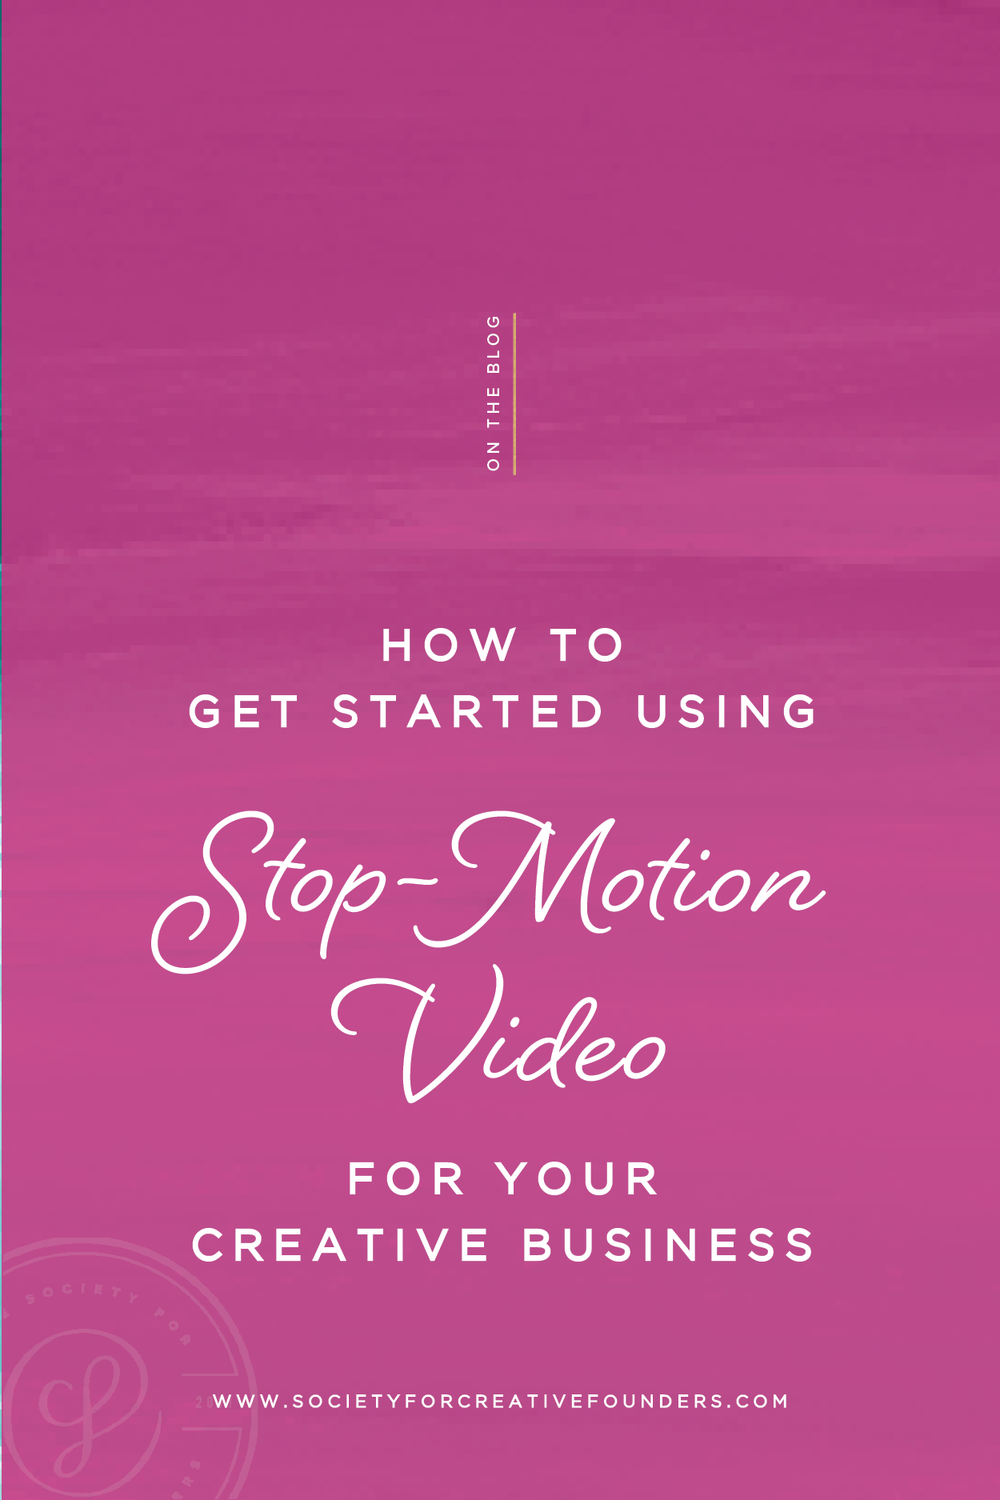 How to get started using stop-motion video for your creative business - Society for Creative Founders